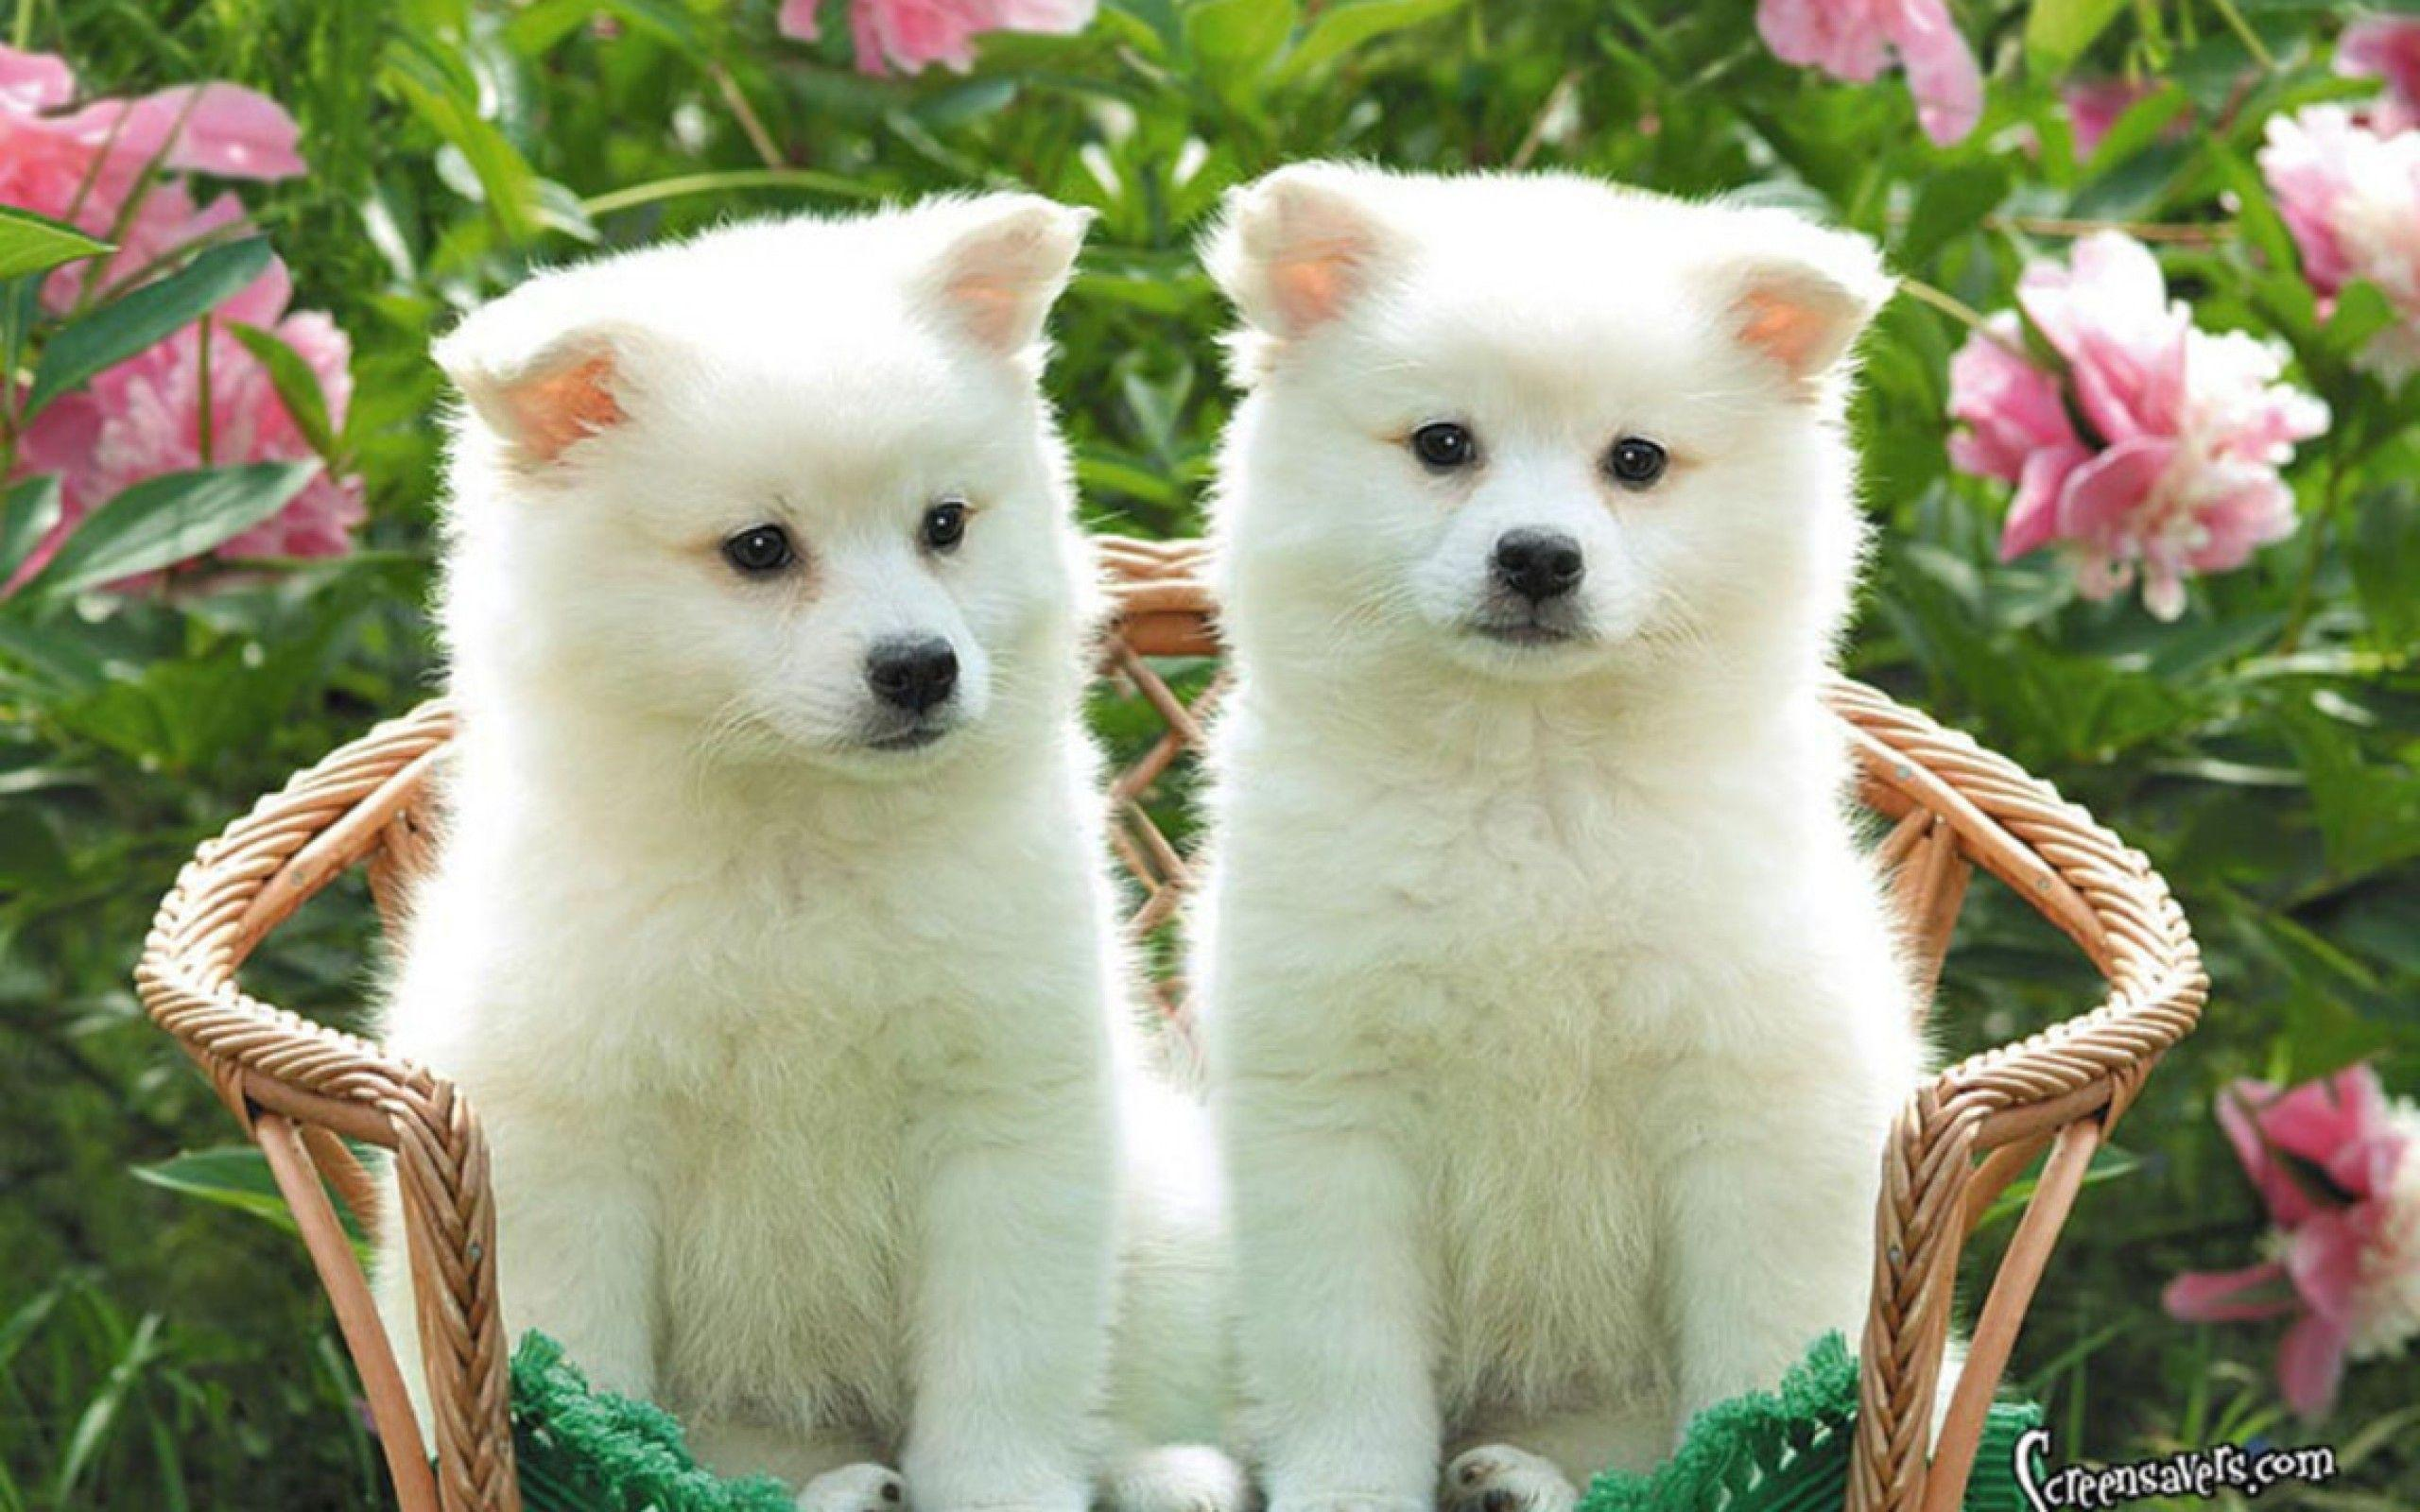 Wallpapers Of Cute Puppies